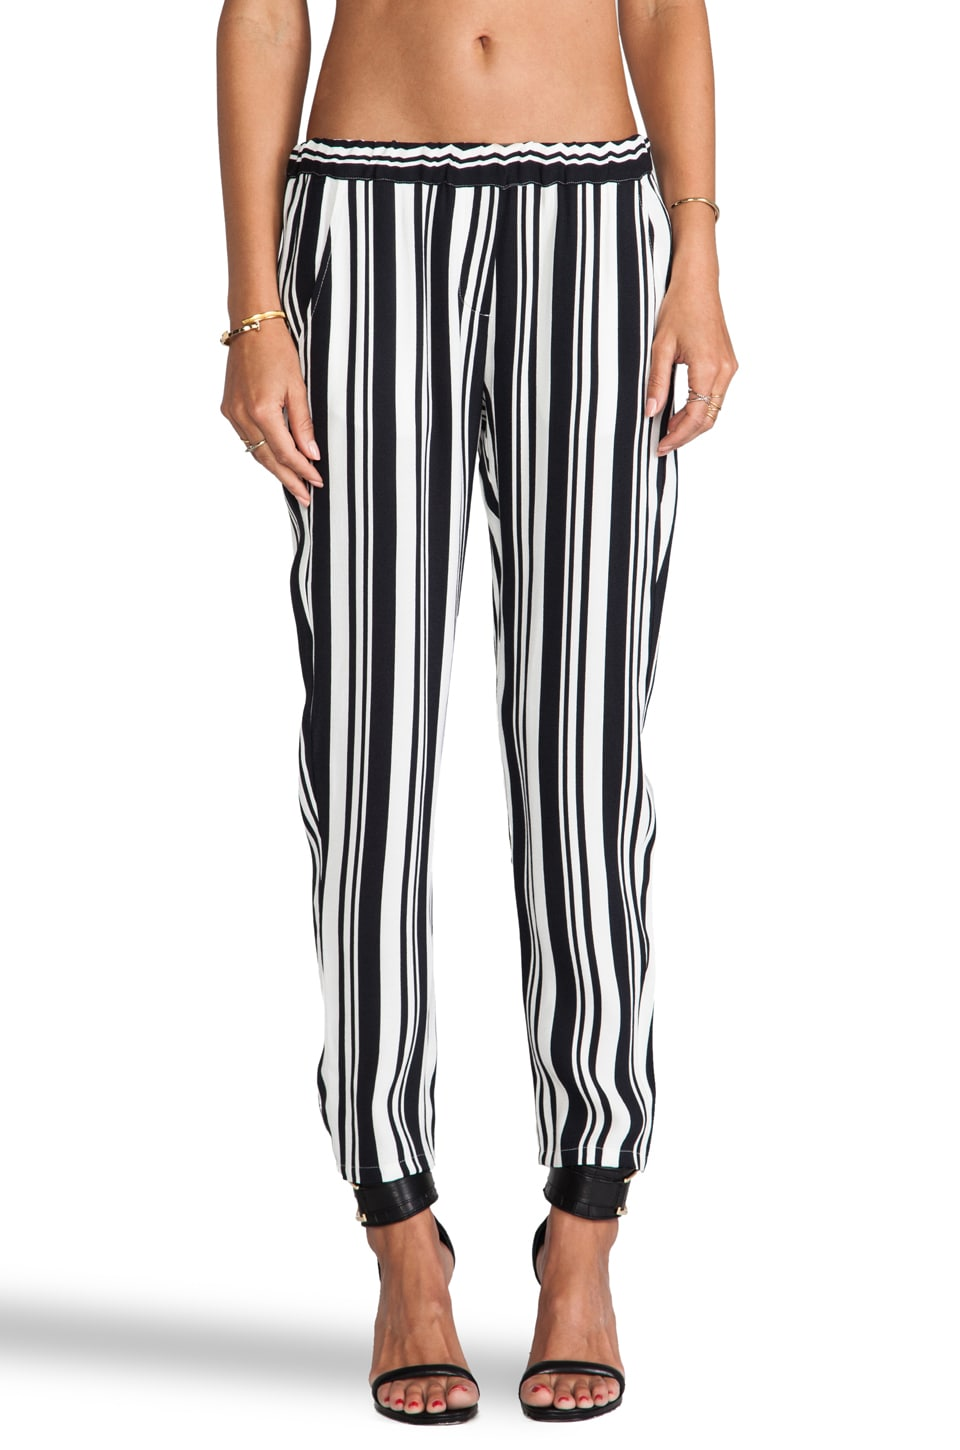 Ella Moss Annika Striped Pants